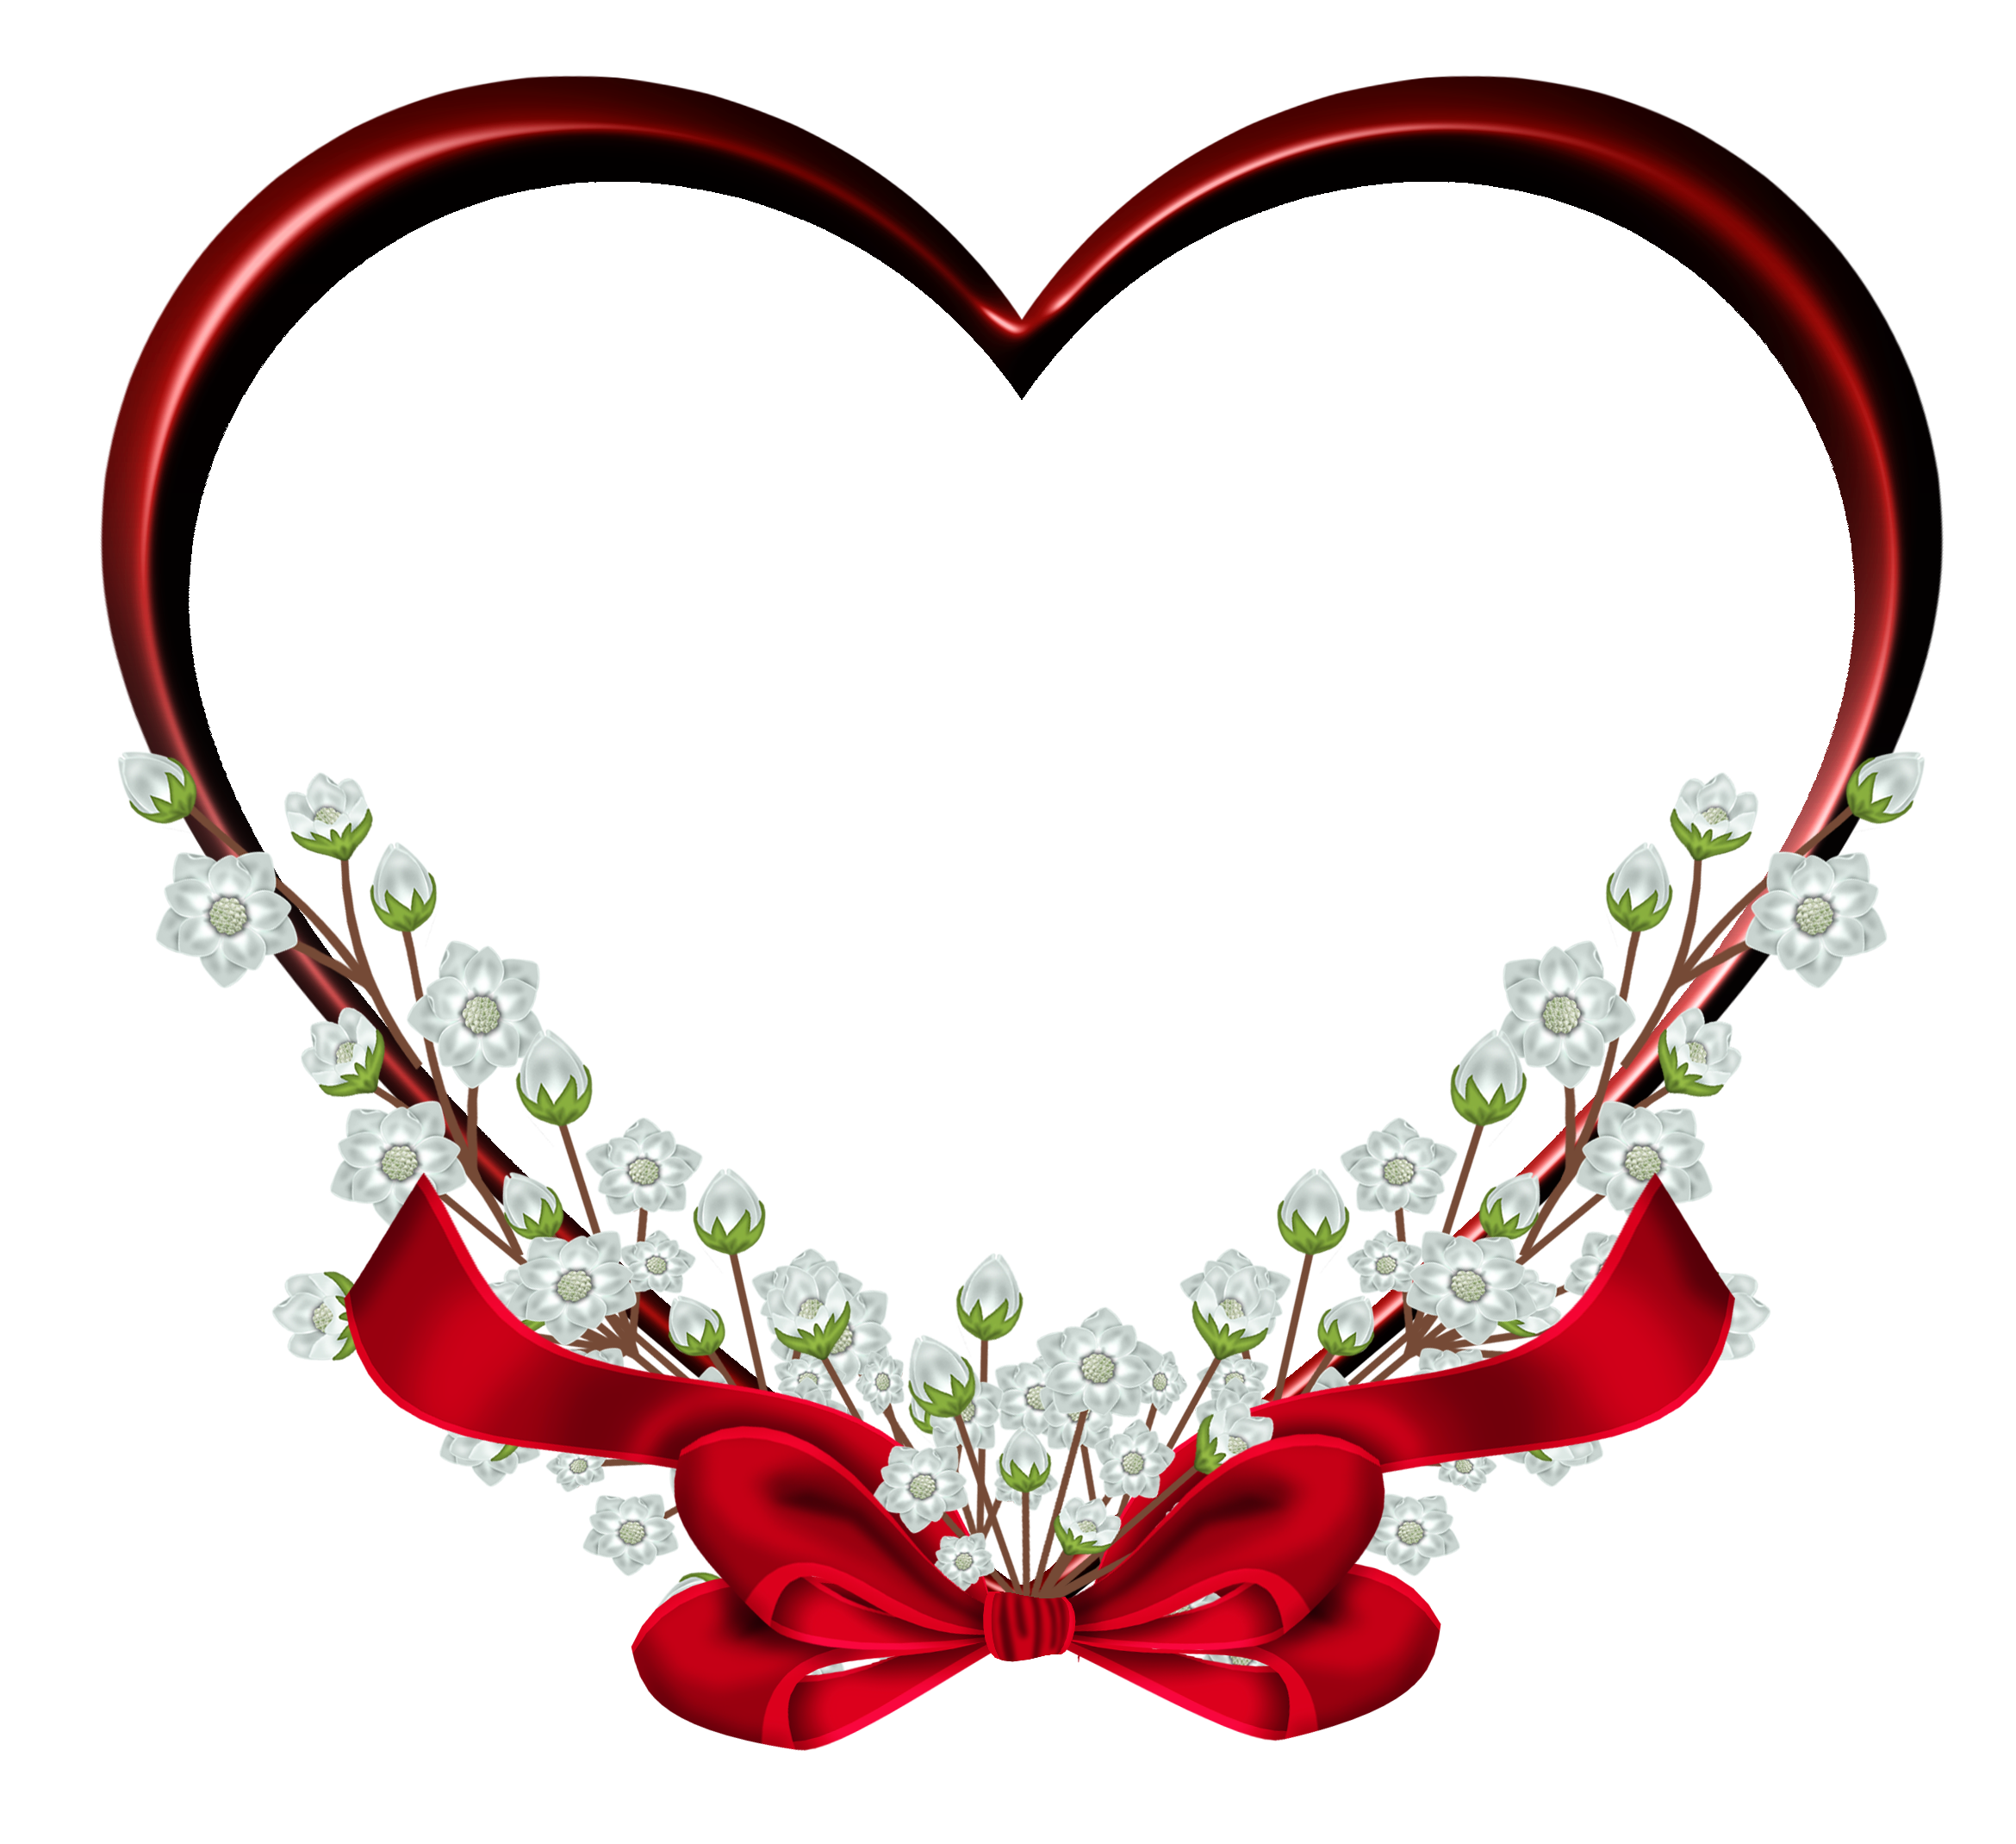 Love Clipart PNG - 124463